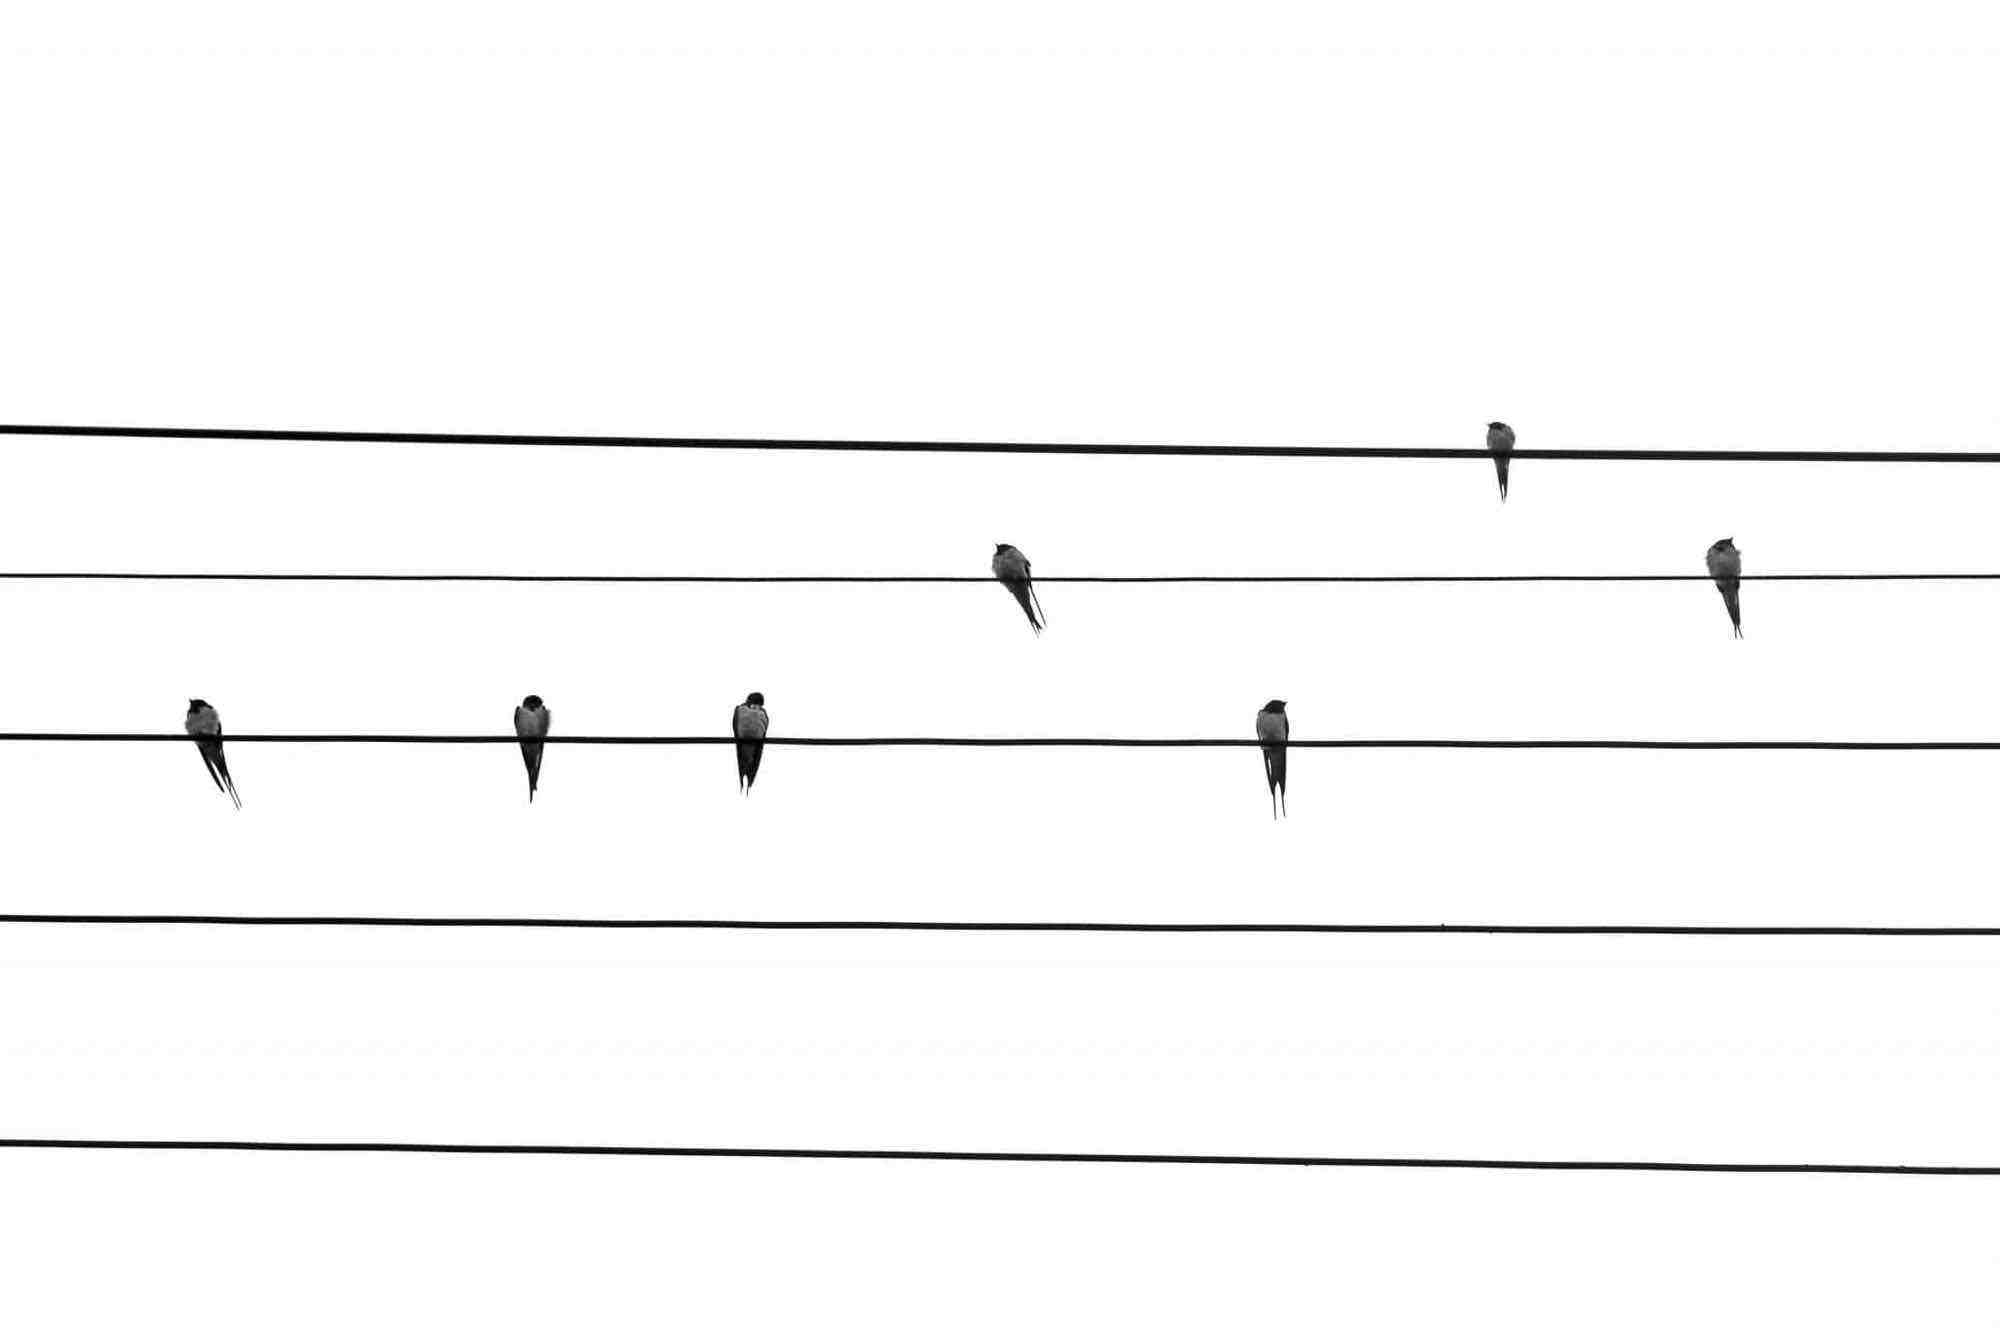 Artwork depicting birds sitting on a wire